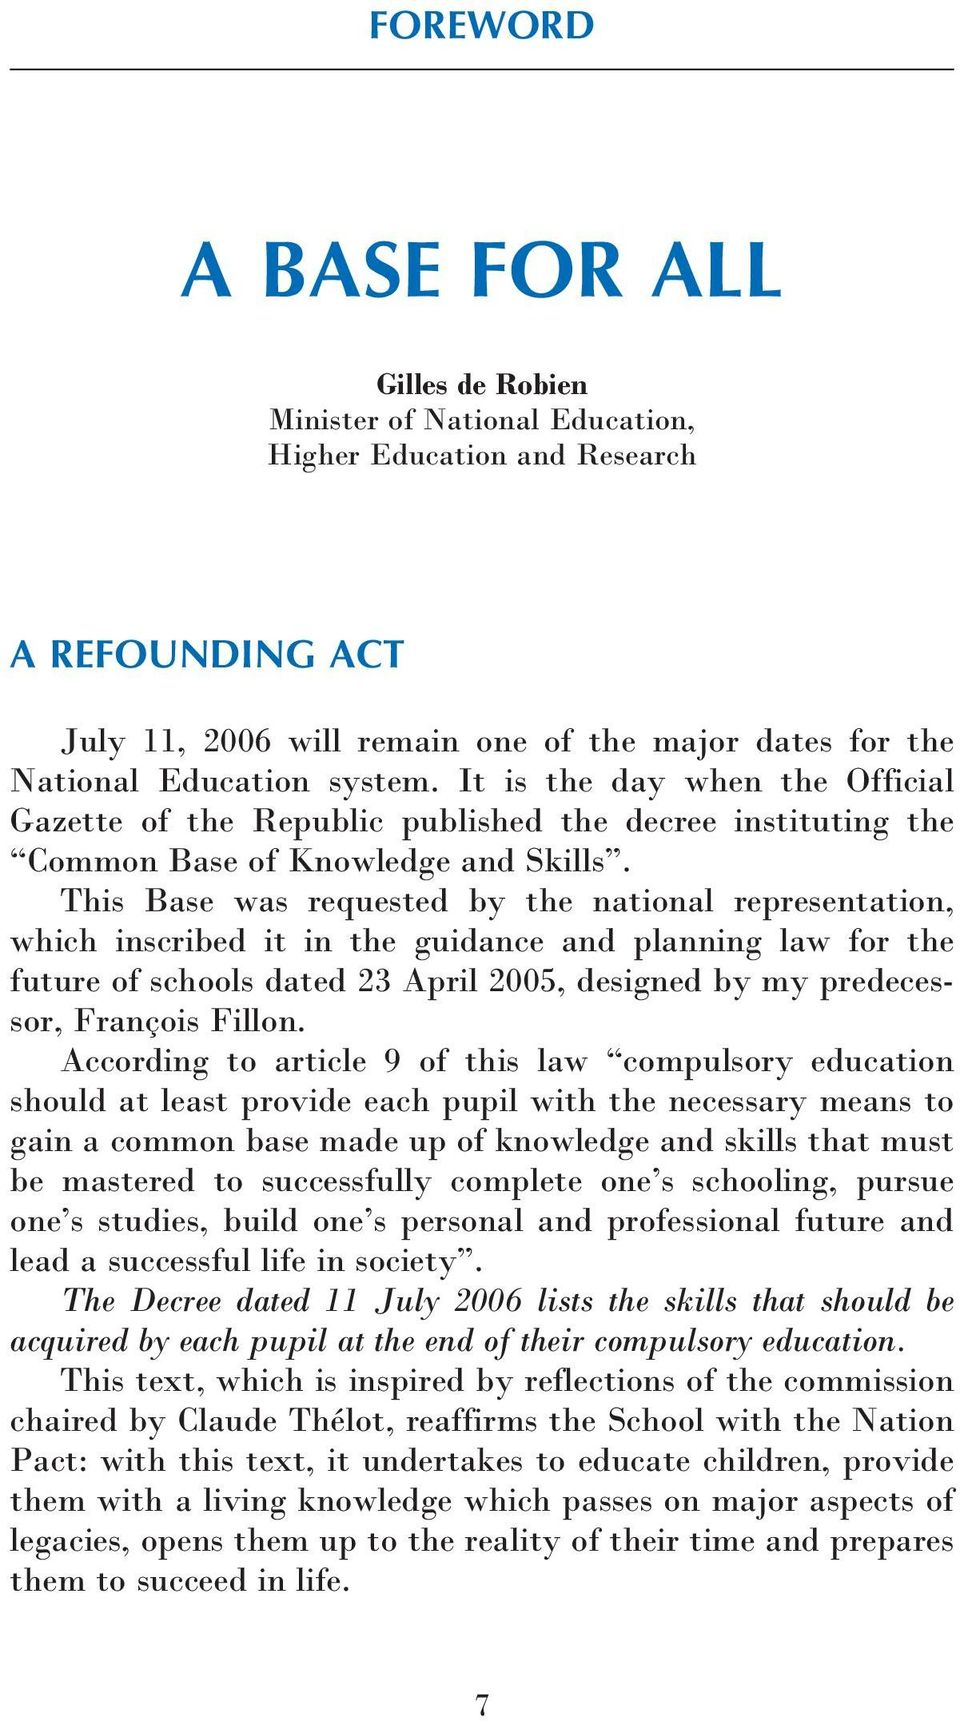 This Base was requested by the national representation, which inscribed it in the guidance and planning law for the future of schools dated 23 April 2005, designed by my predecessor, François Fillon.